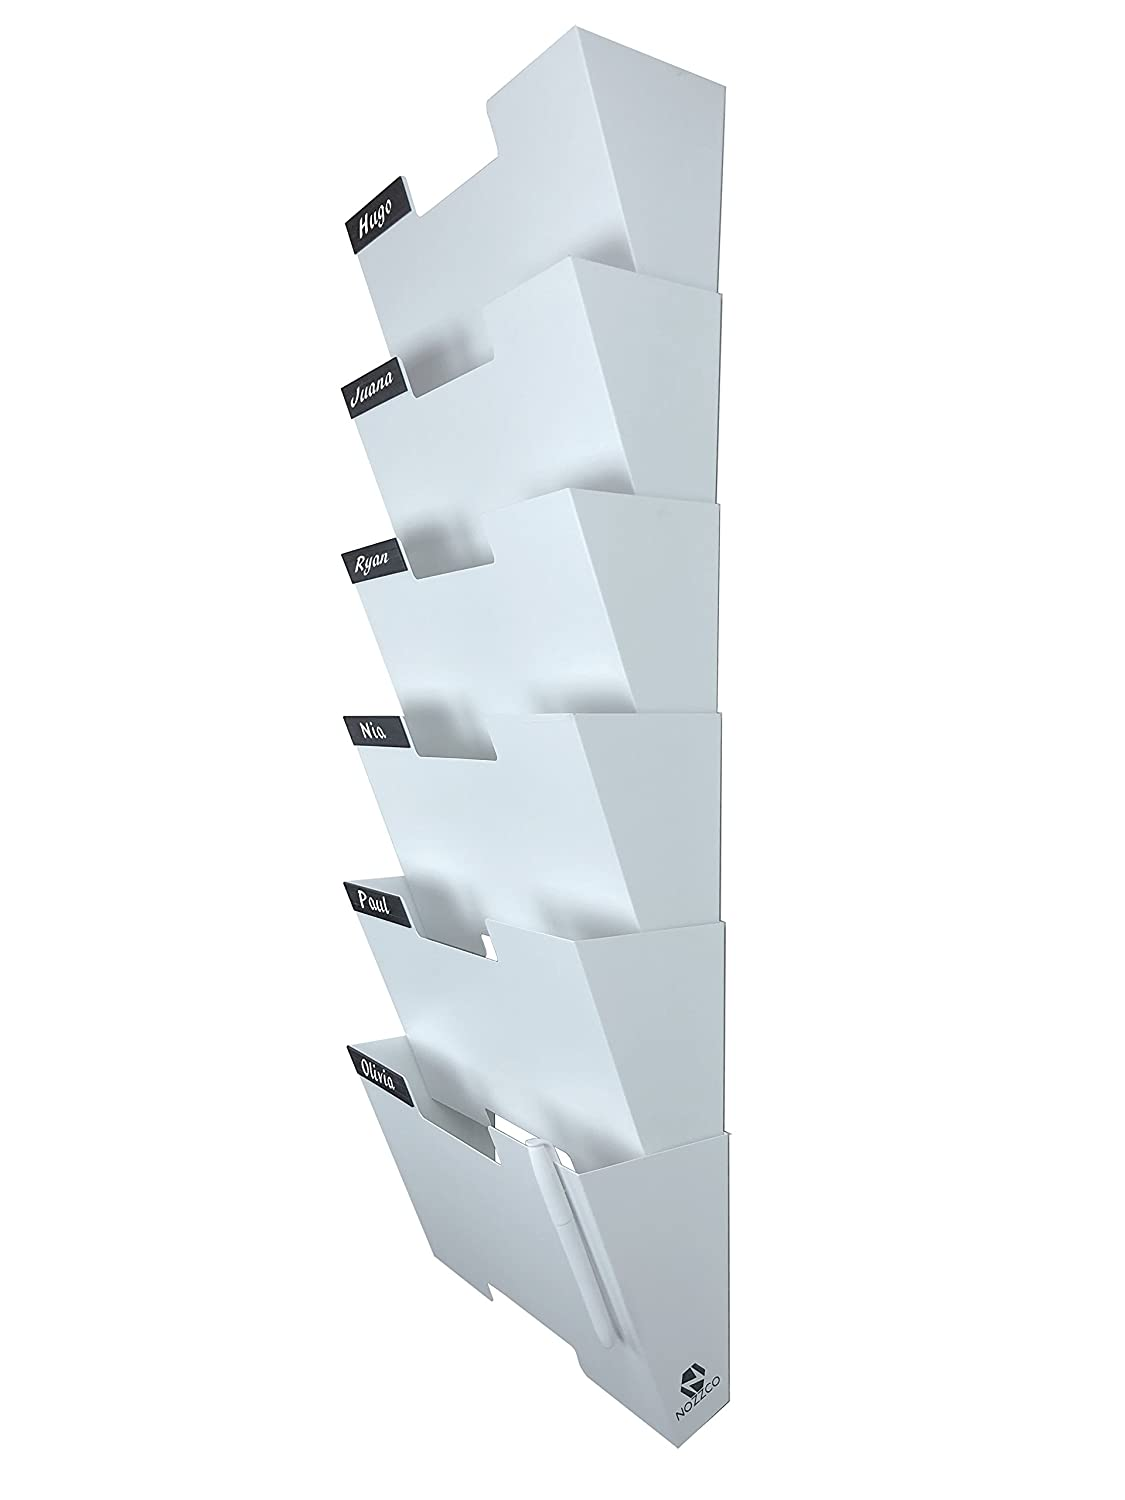 White Wall Mount Hanging File Holder Organizer 6 Pack Durable Steel Rack, Solid, Sturdy and Wide for Letters, Files, Magazines and More Organize The Desktop, Declutter Your Office Nozzco